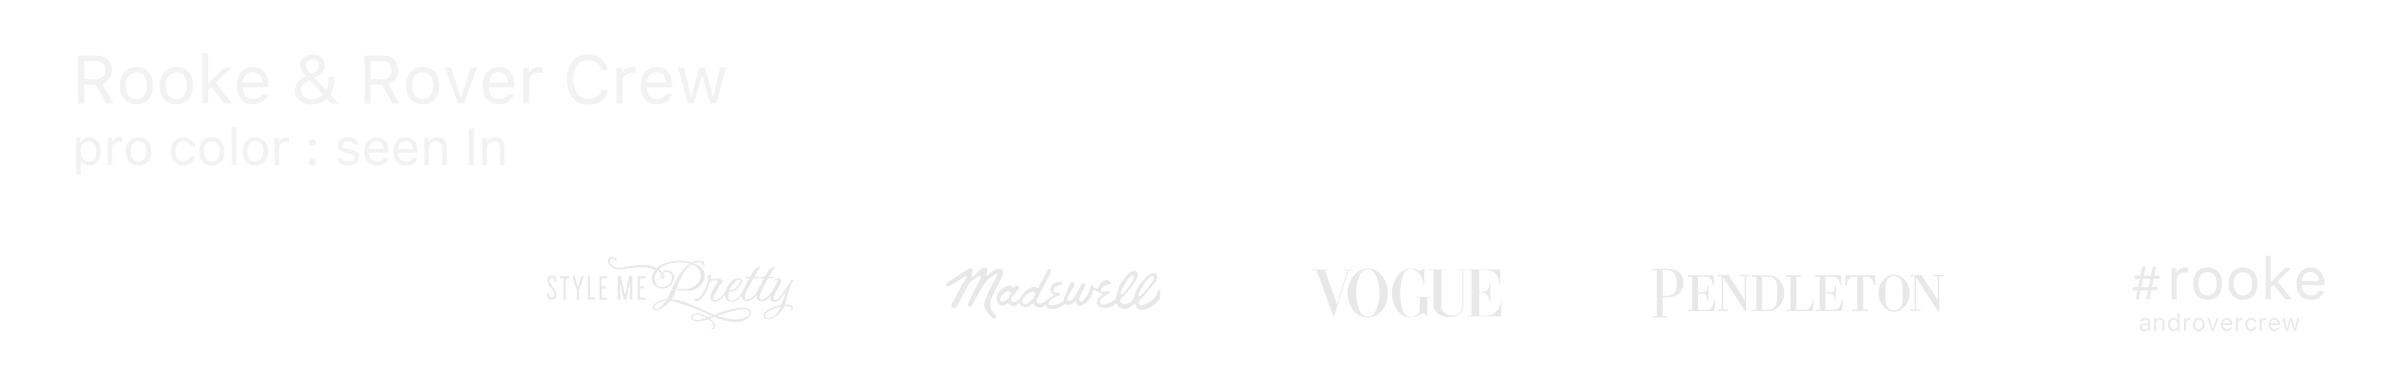 roverfeatured-01.png